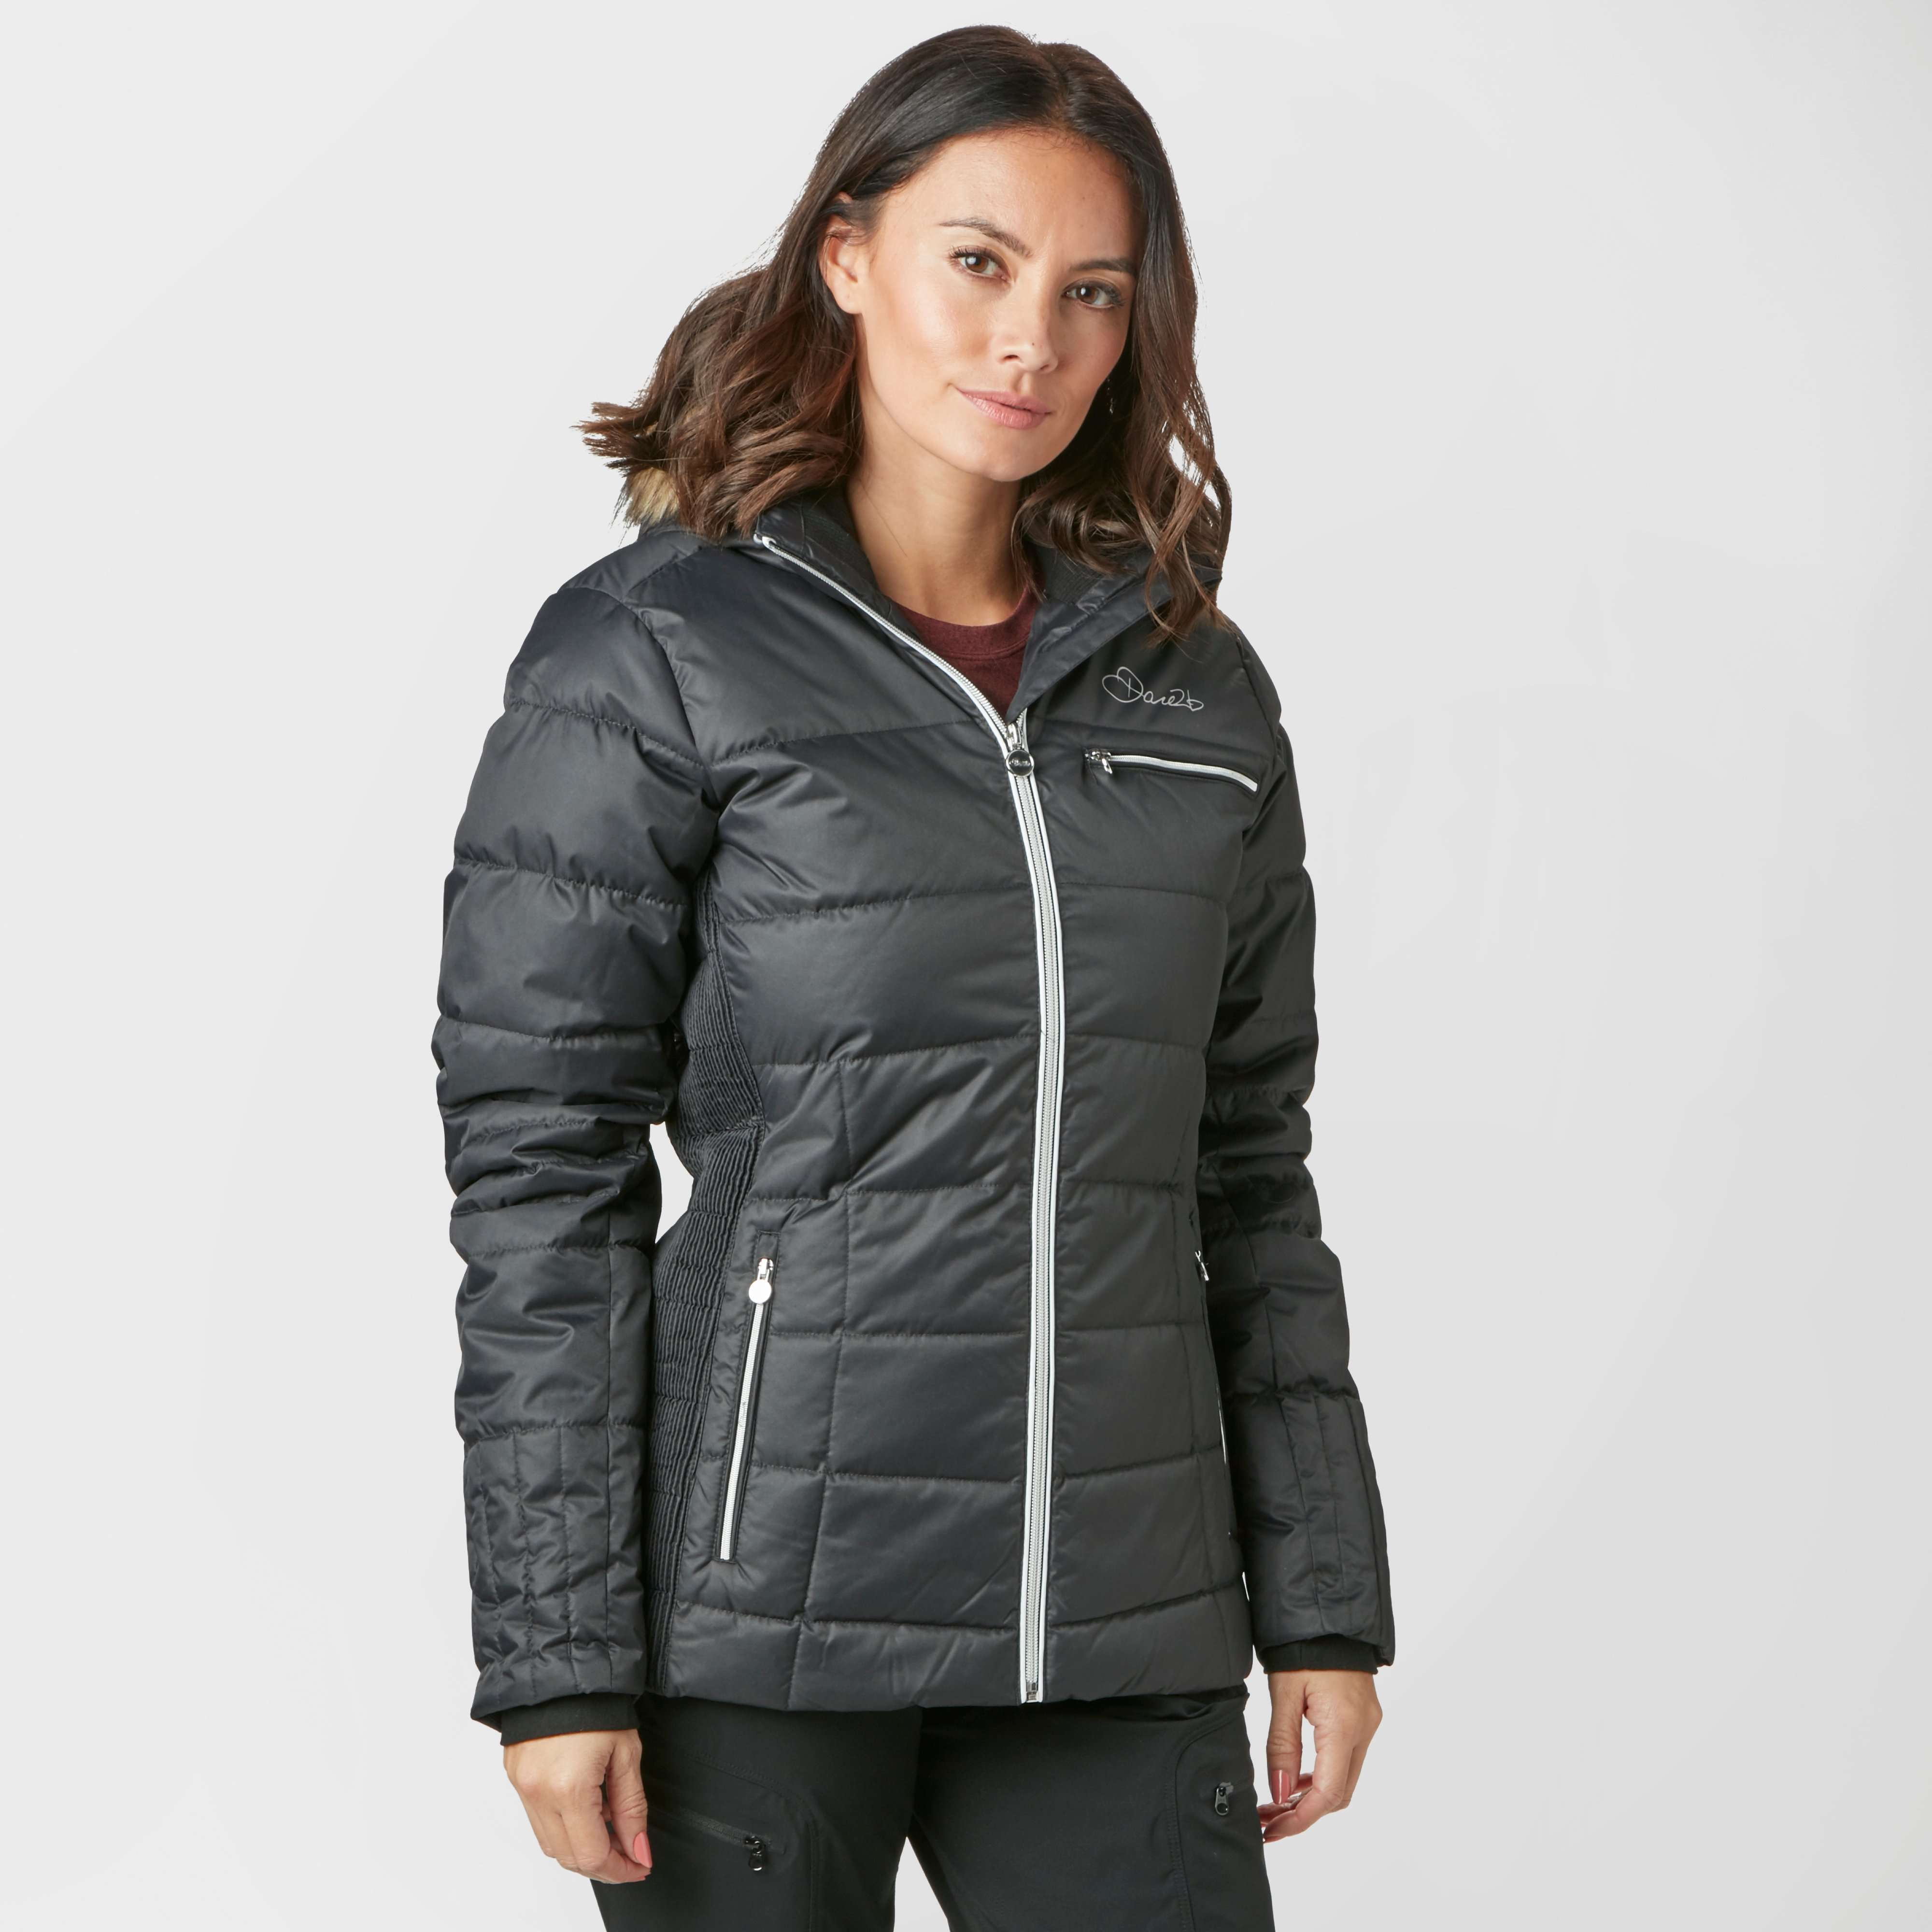 DARE 2B Women's Cultivated Ski Jacket